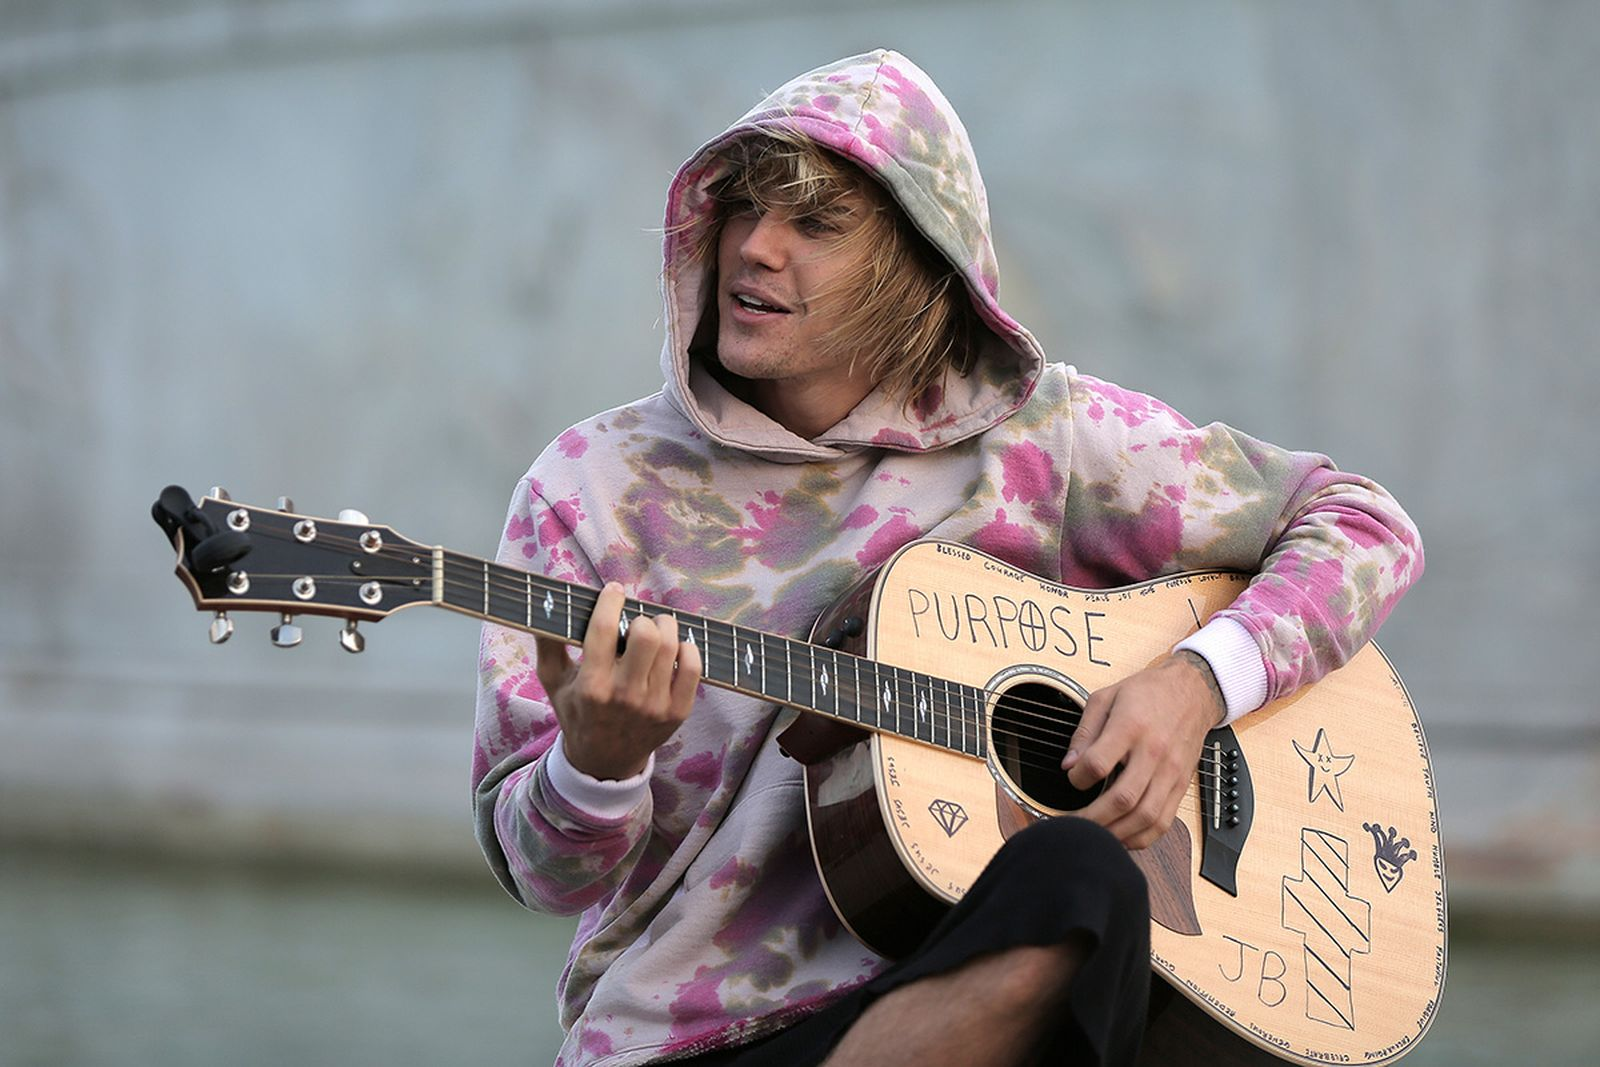 Justin Bieber stops at the Buckingham Palace fountain to play a couple of songs with his guitar for Hailey Baldwin and fans